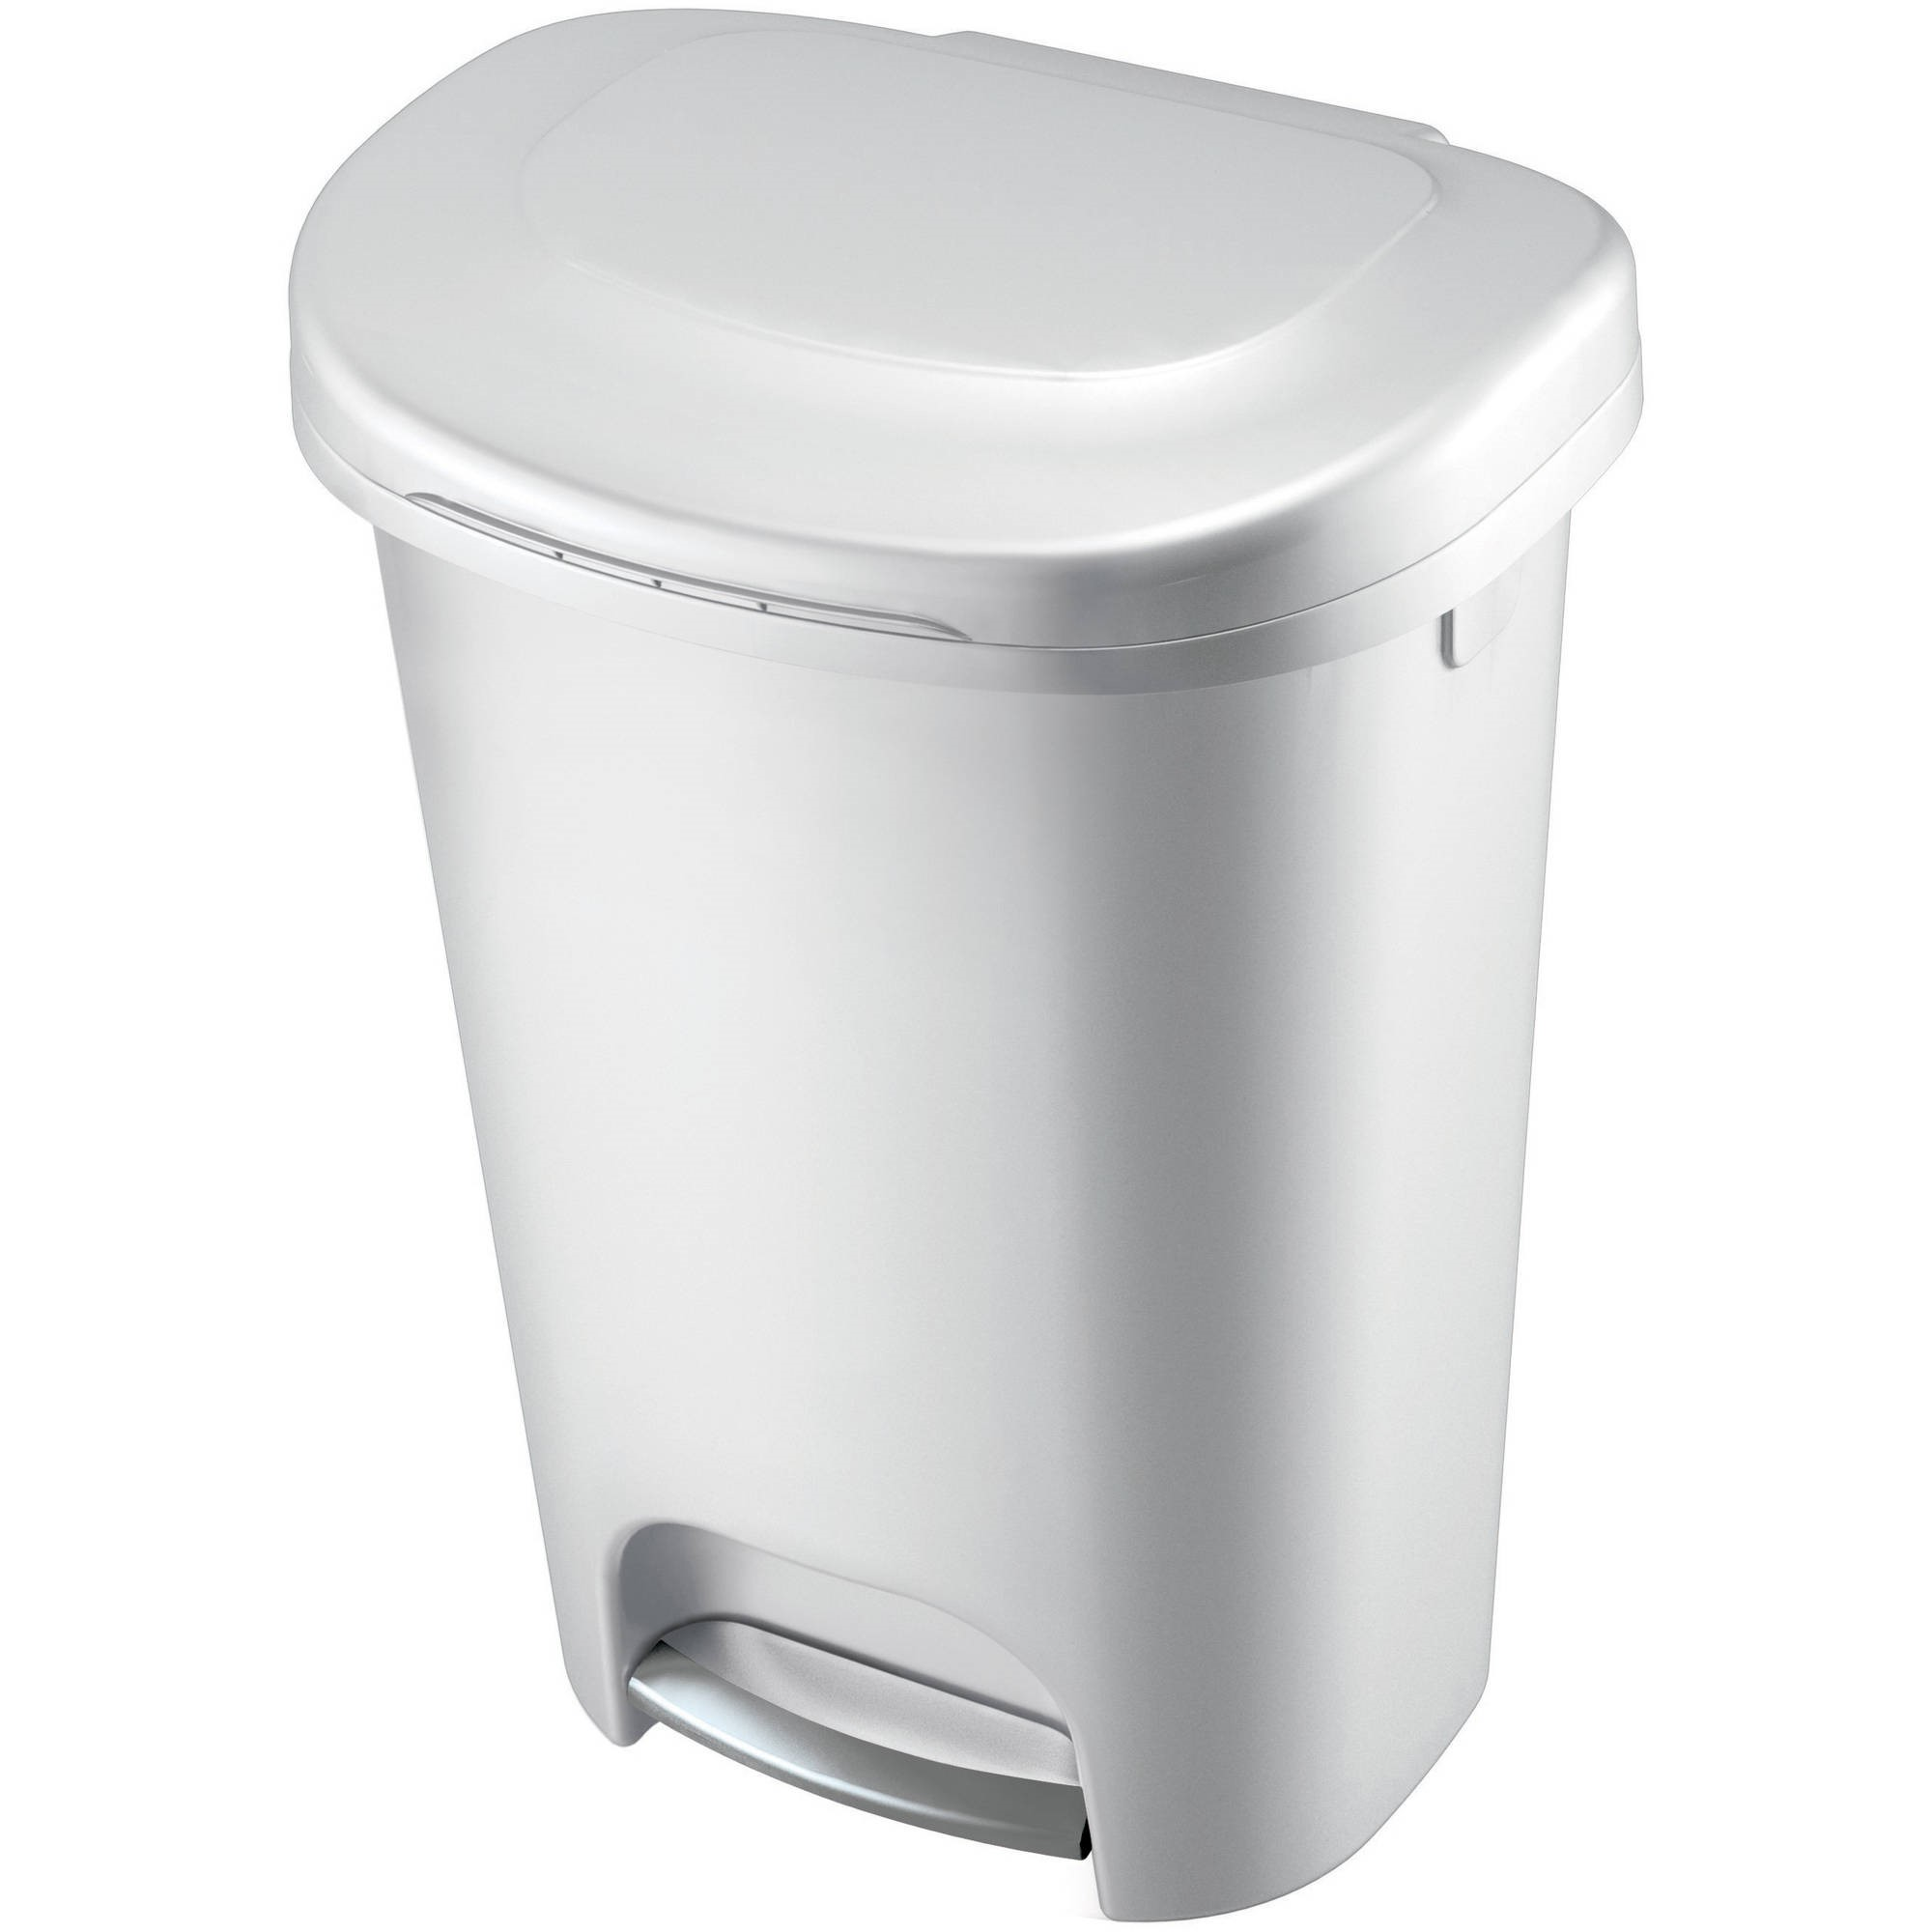 Rubbermaid 13 Gal Premium Step On Trash Can by Generic